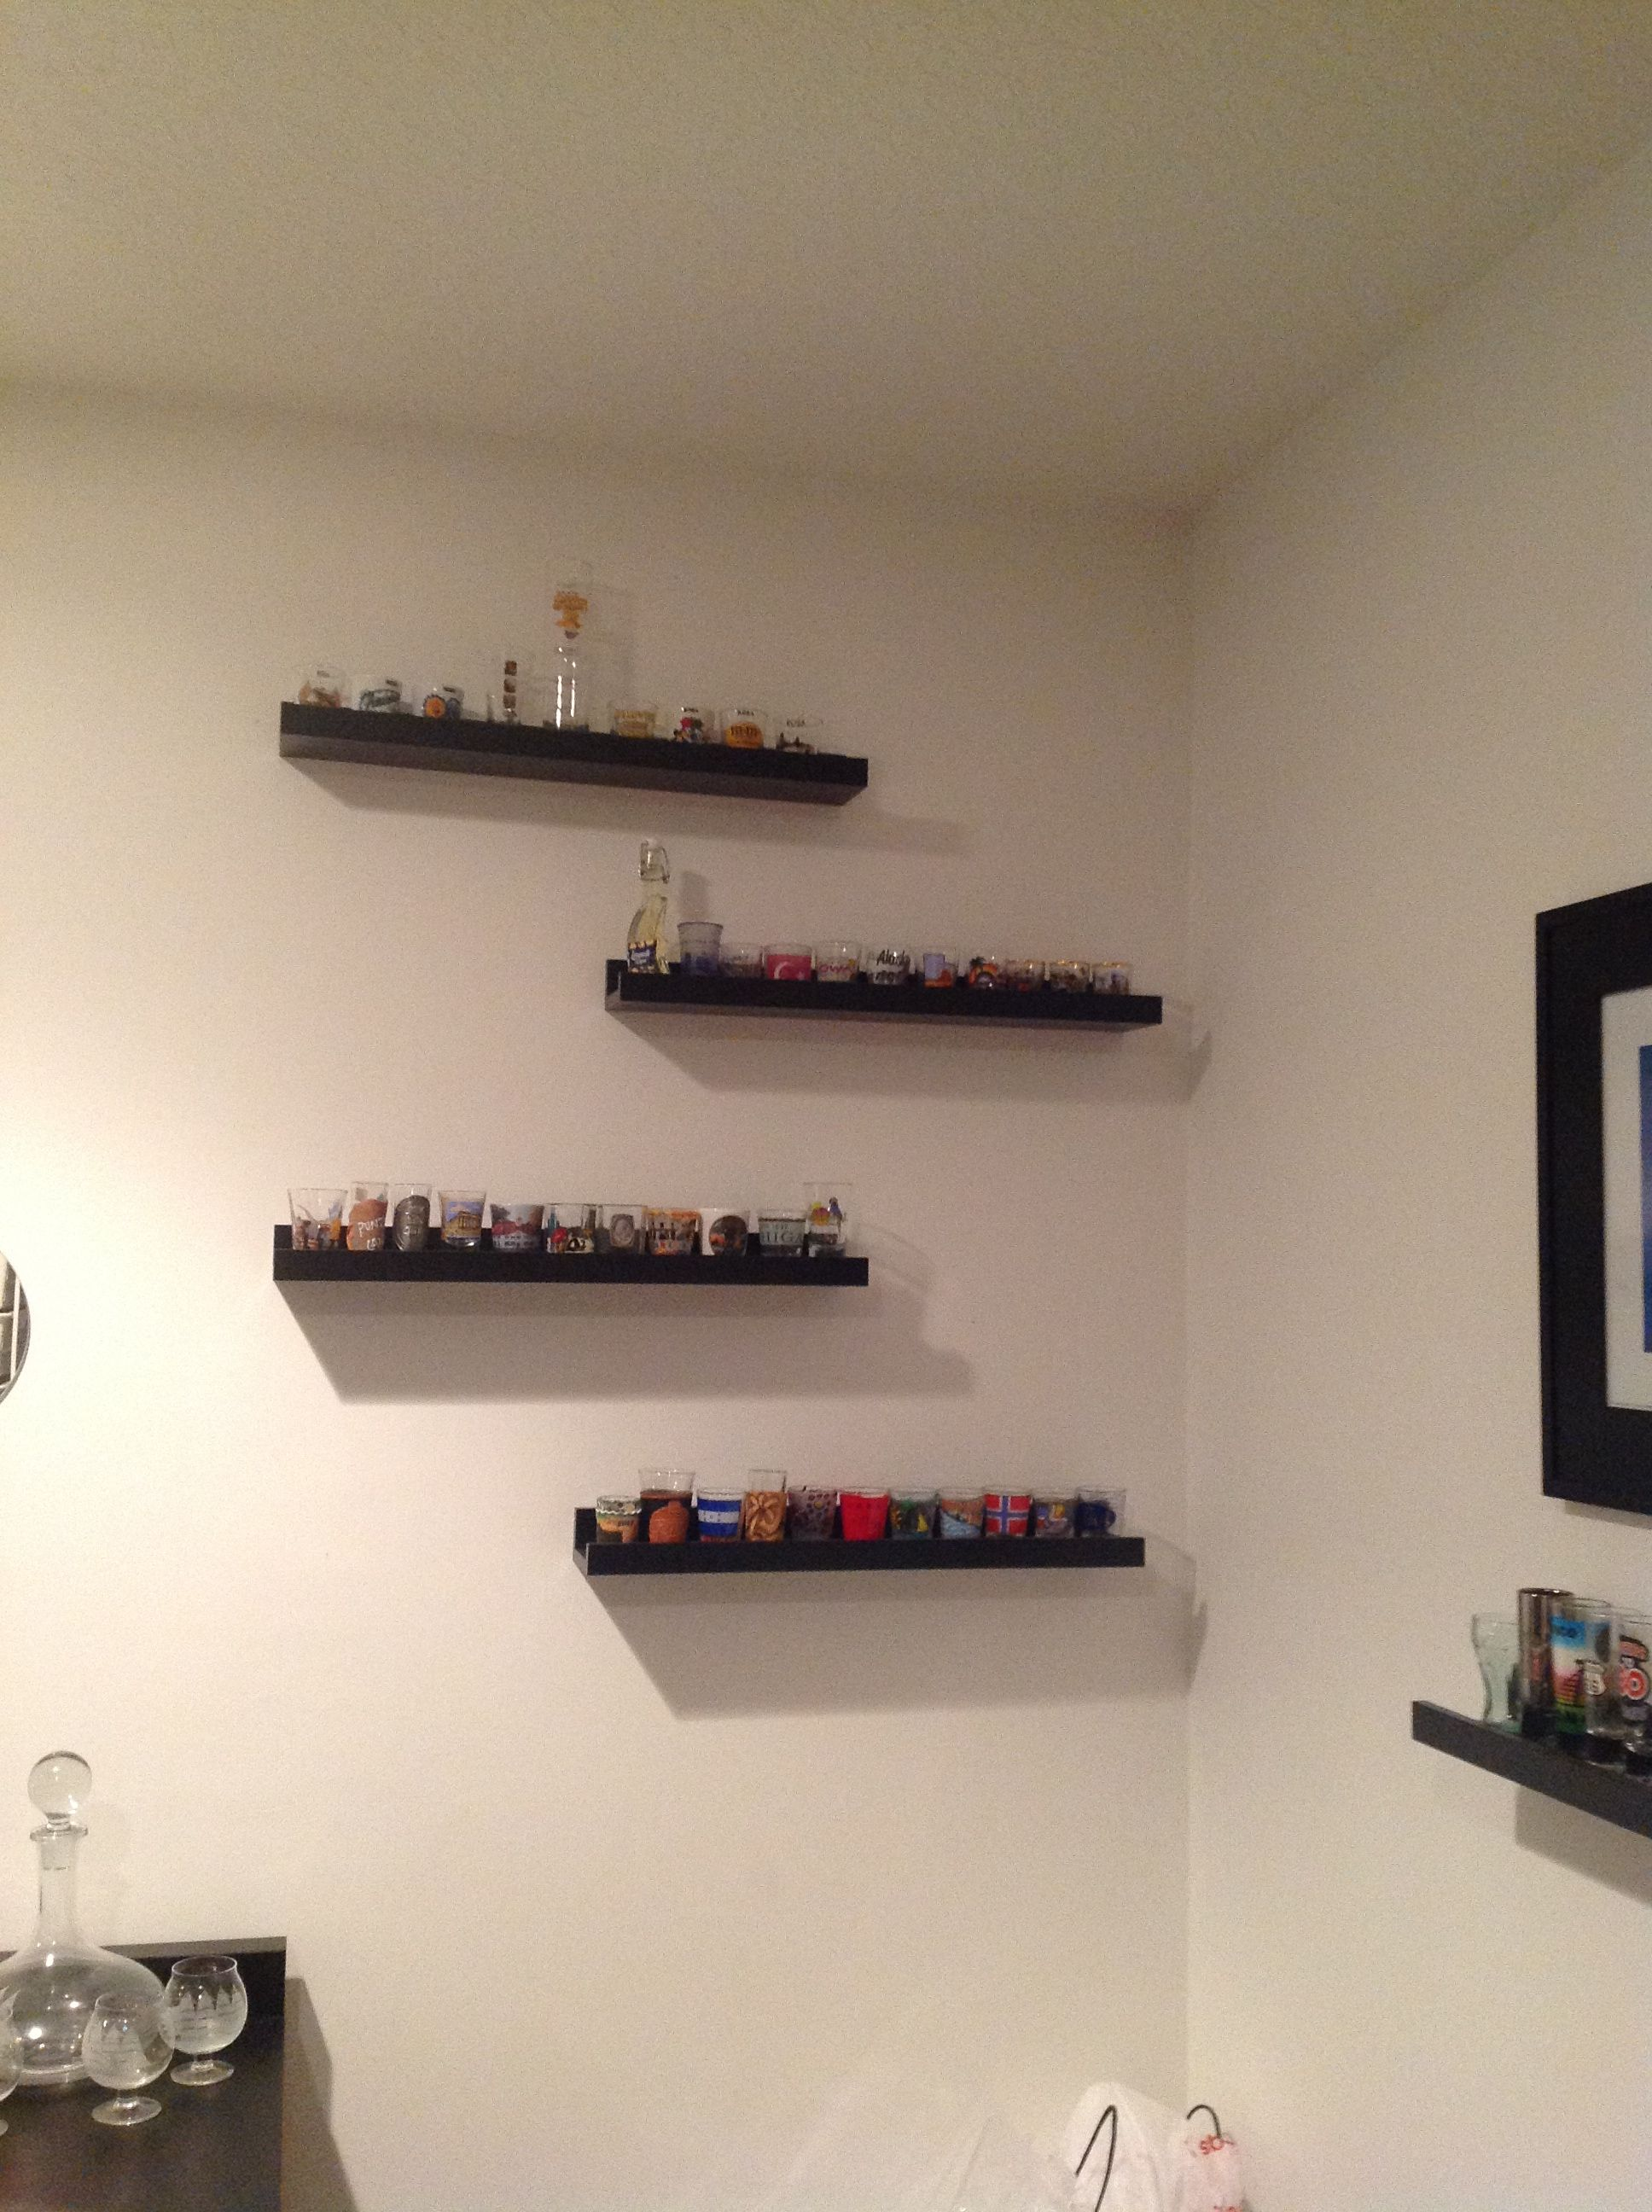 Used Ikea shelves found in ikea used for displaying shot glasses | home